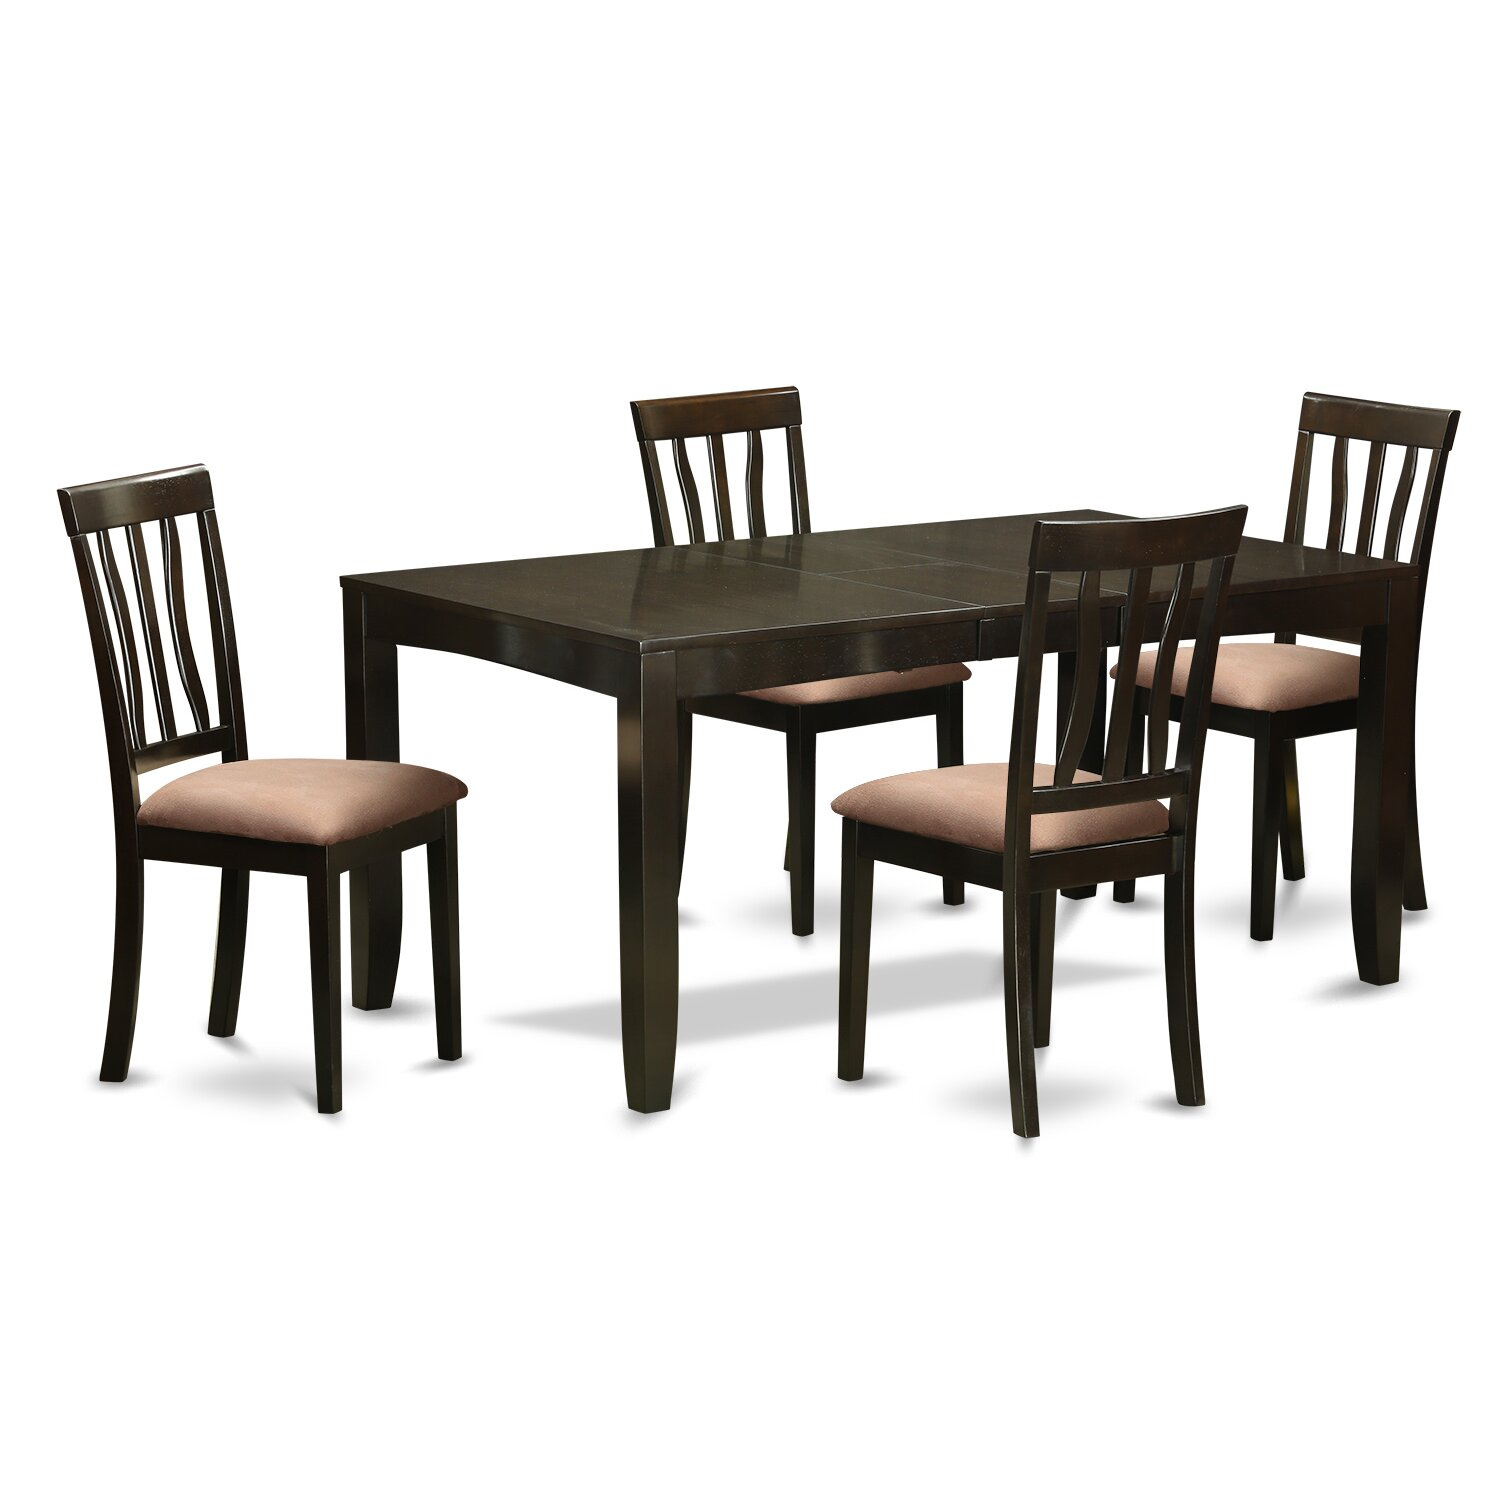 Wooden importers lynfield 5 piece dining set wayfair for Four chair dining table set